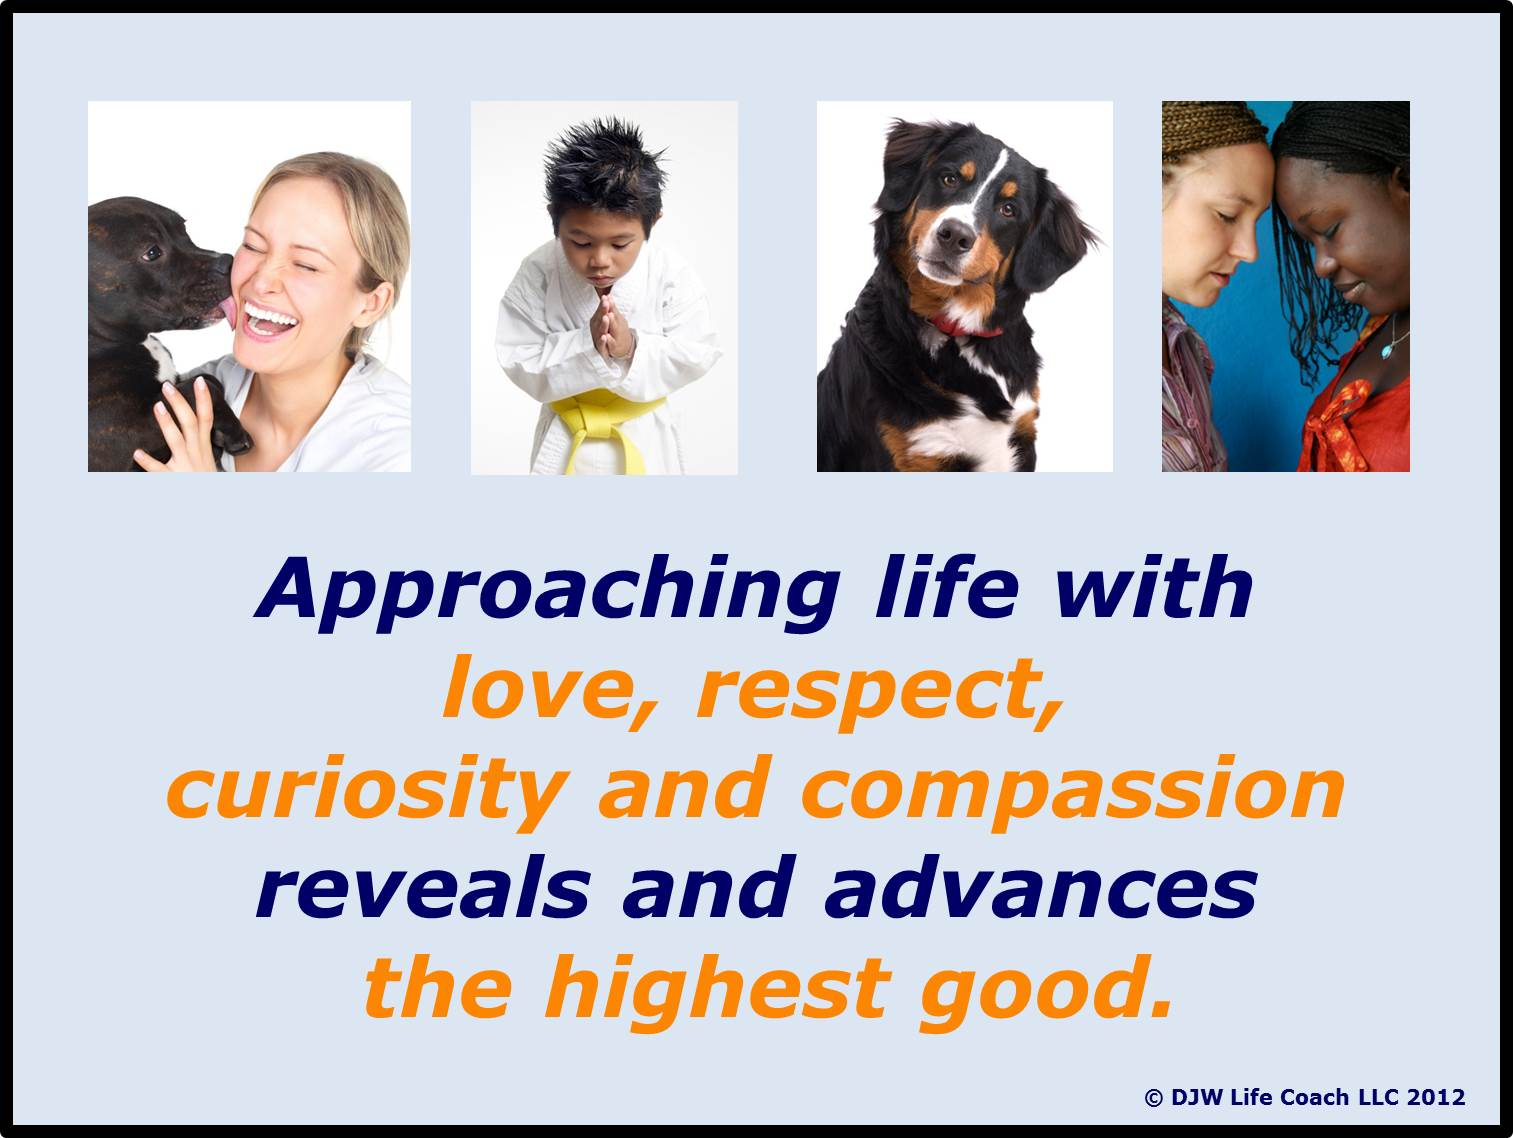 Love, Respect, Curiosity, Compassion Affirmation